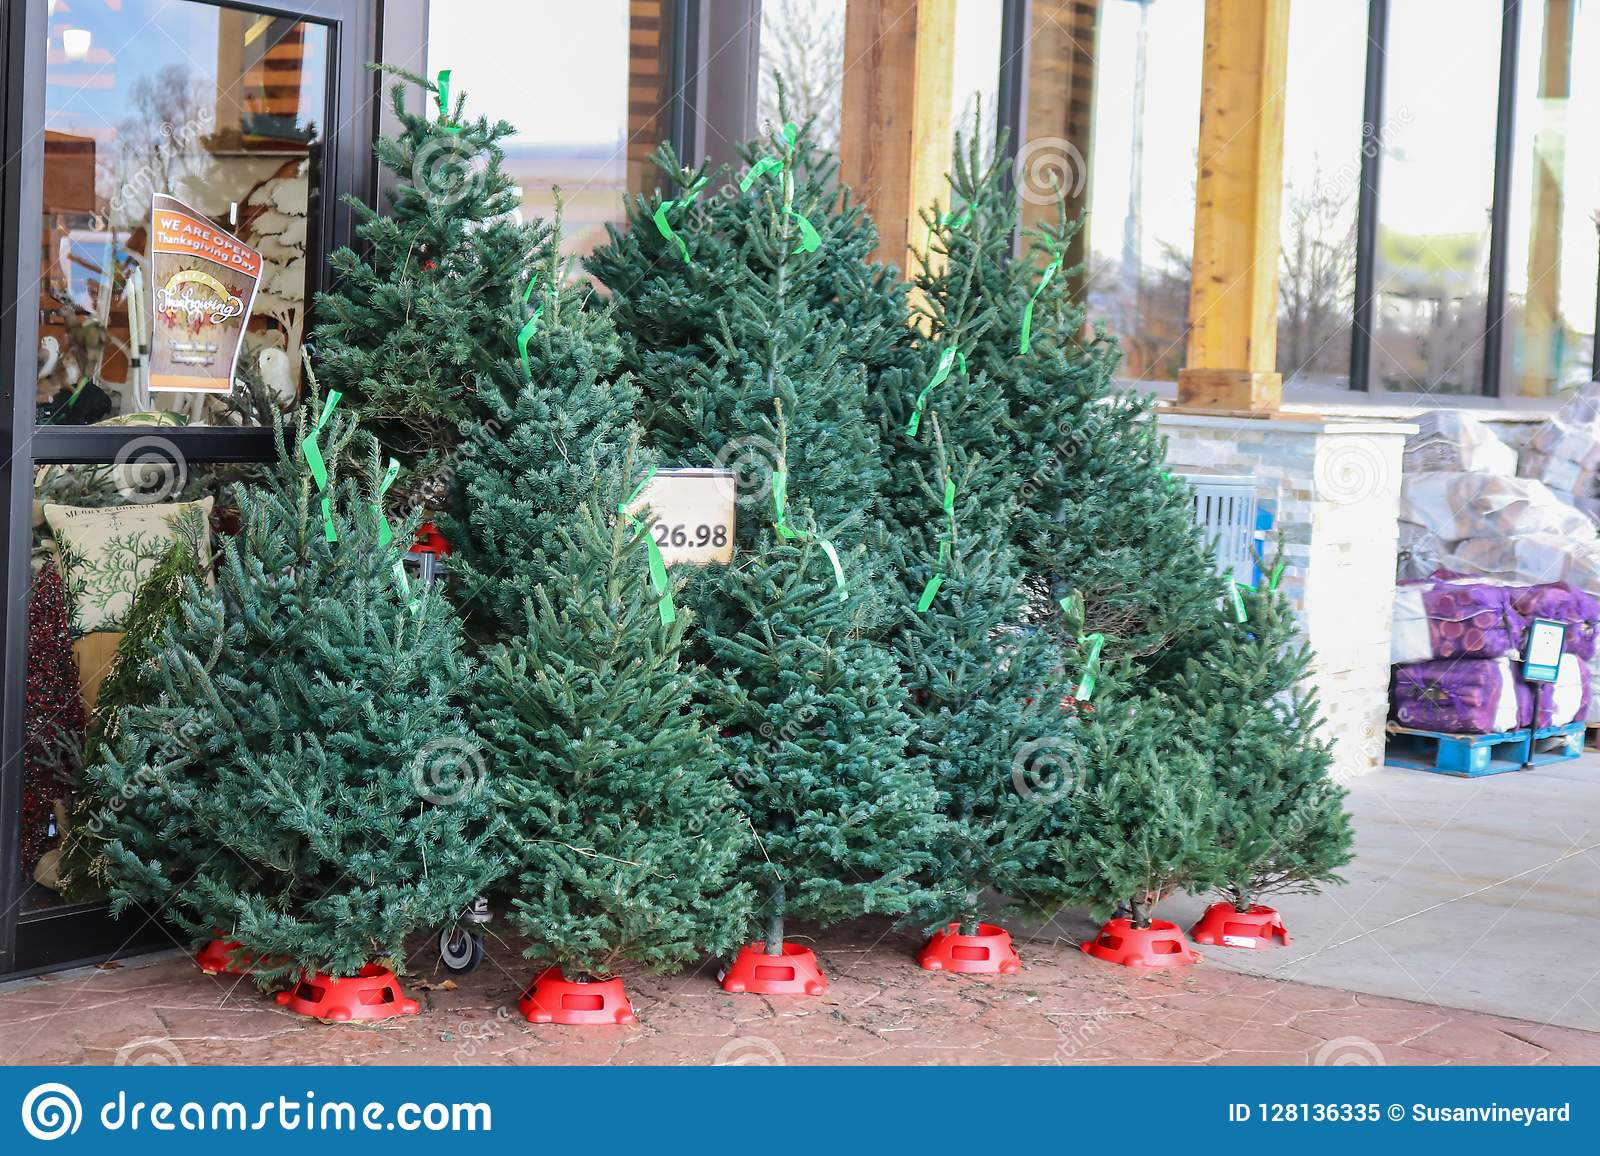 Christmas Trees For Sale.Small Live Christmas Trees For Sale Outside A Us Grocery